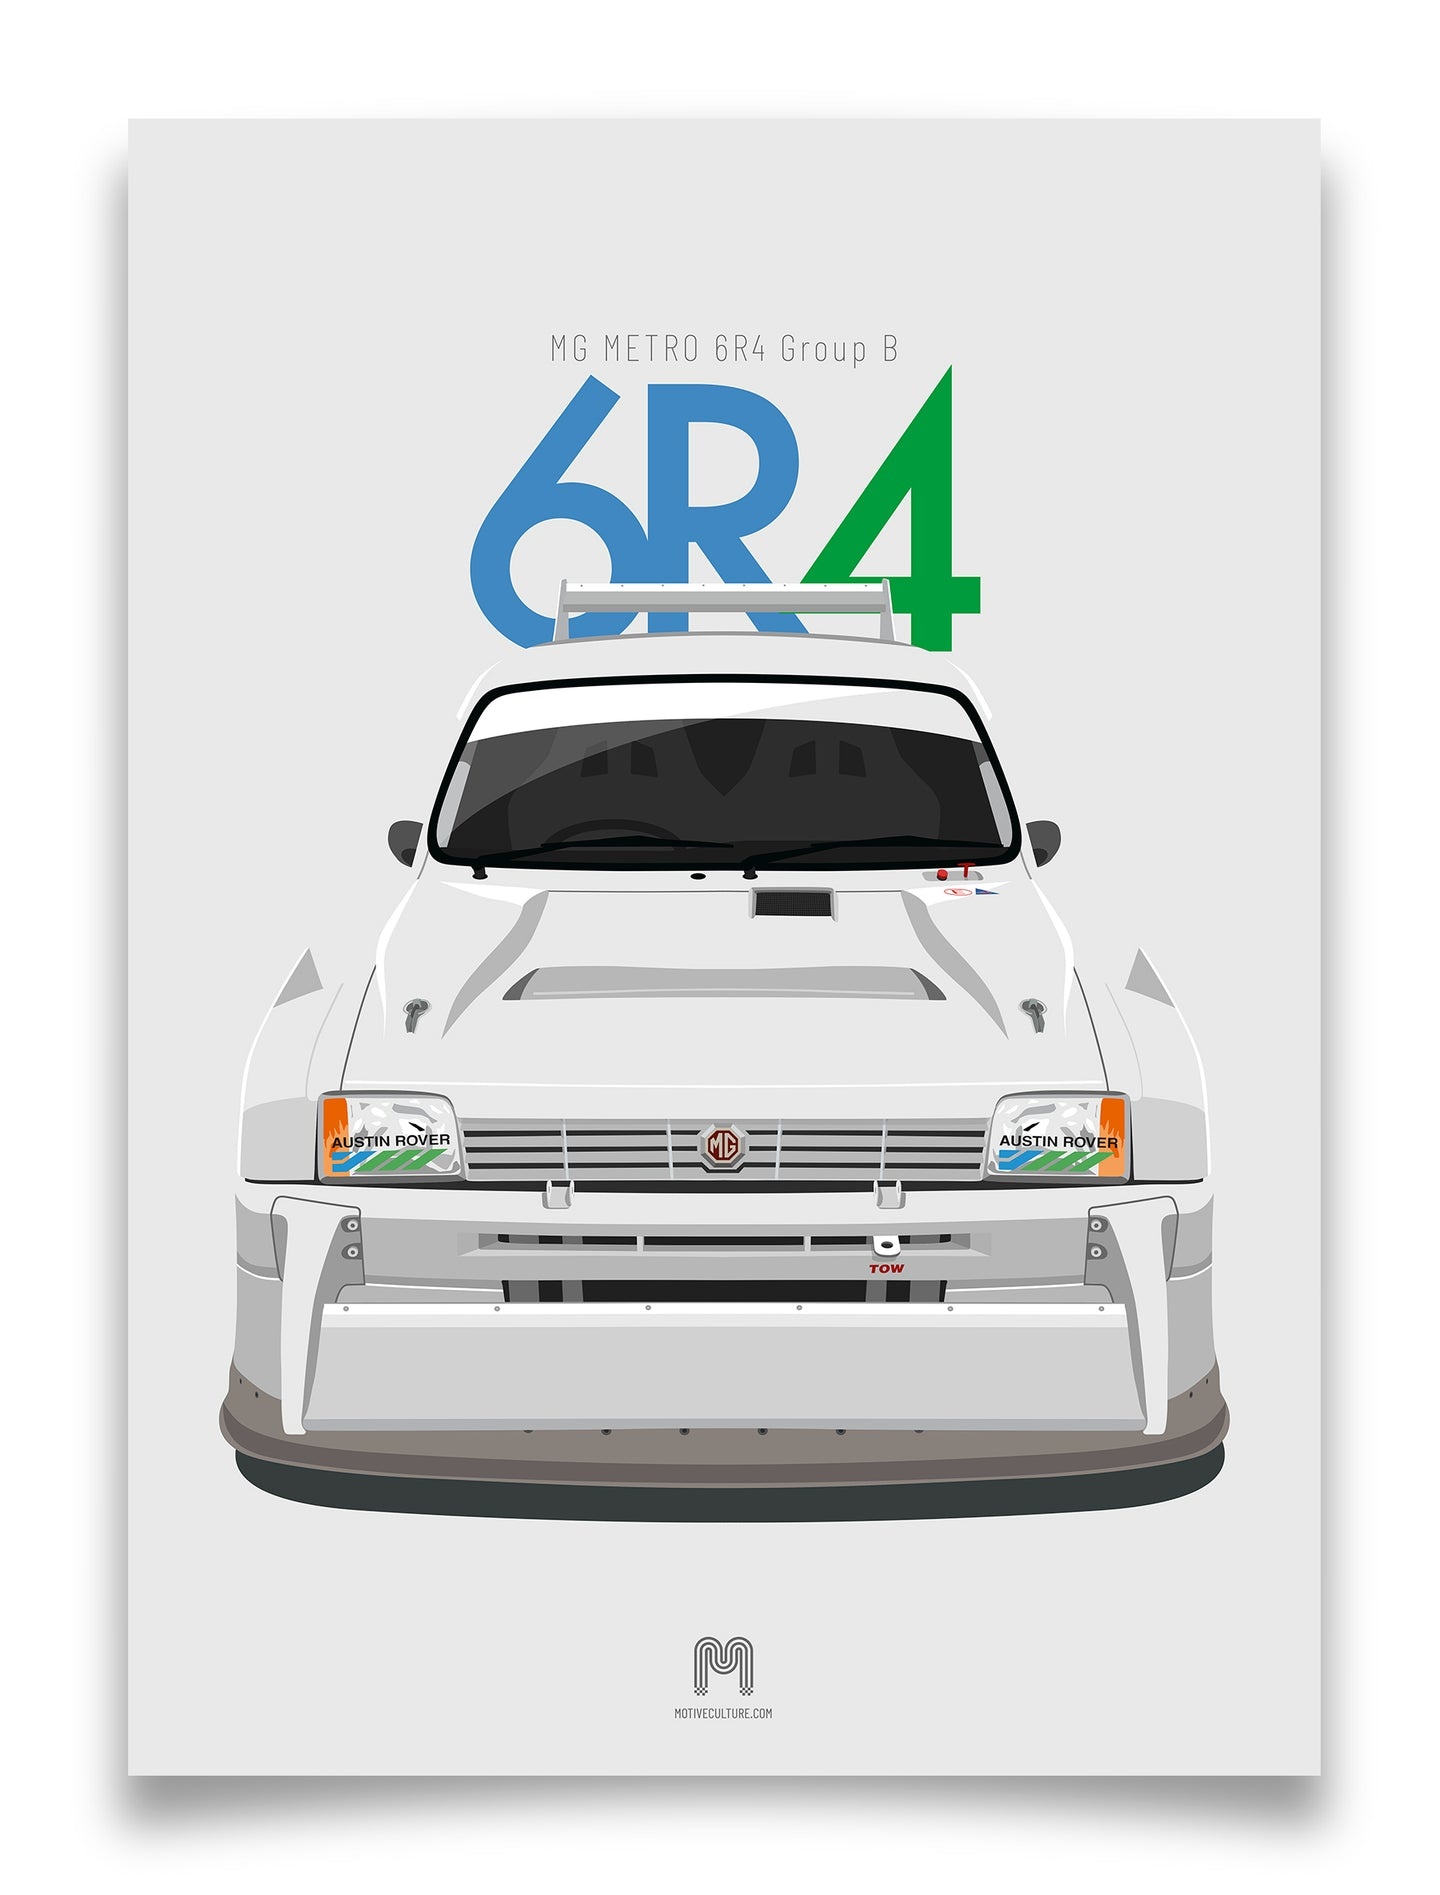 1985 MG Metro 6R4 Group B - Limited Edition Giclée poster print